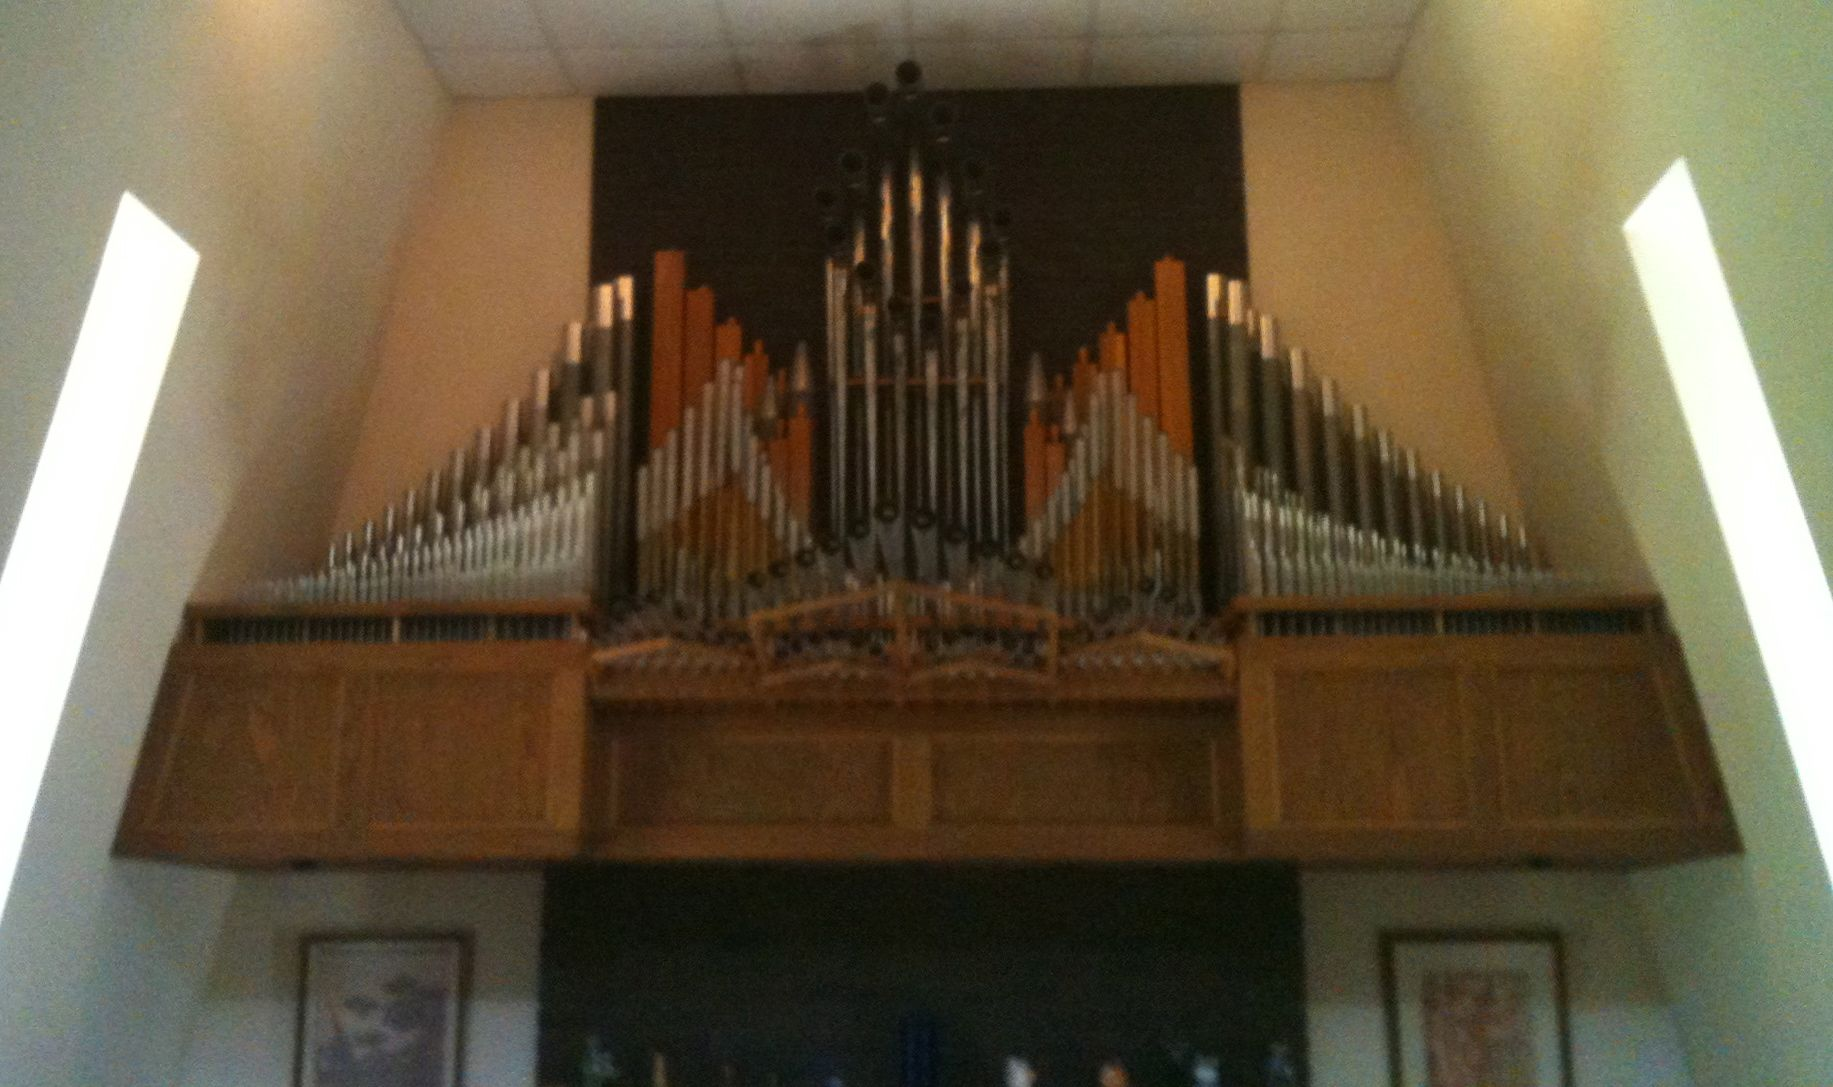 These are the pipes that would play during a fanfare (bugle and horn sounds), which protrude from the fireplace surround.